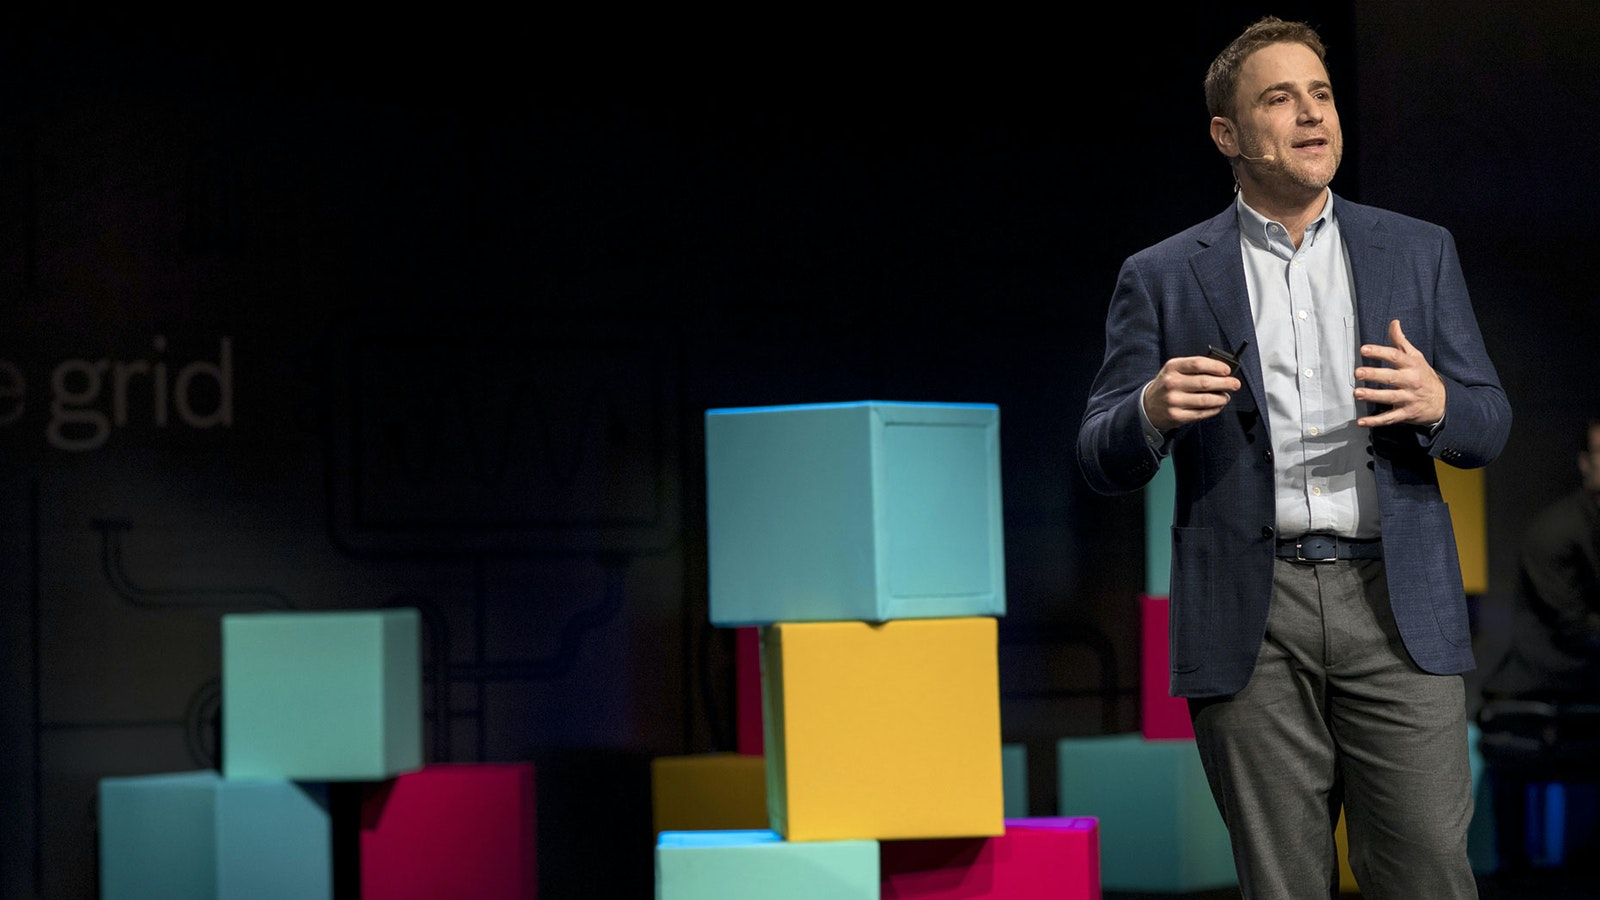 Stewart Butterfield, co-founder and CEO of Slack. Photo: Bloomberg